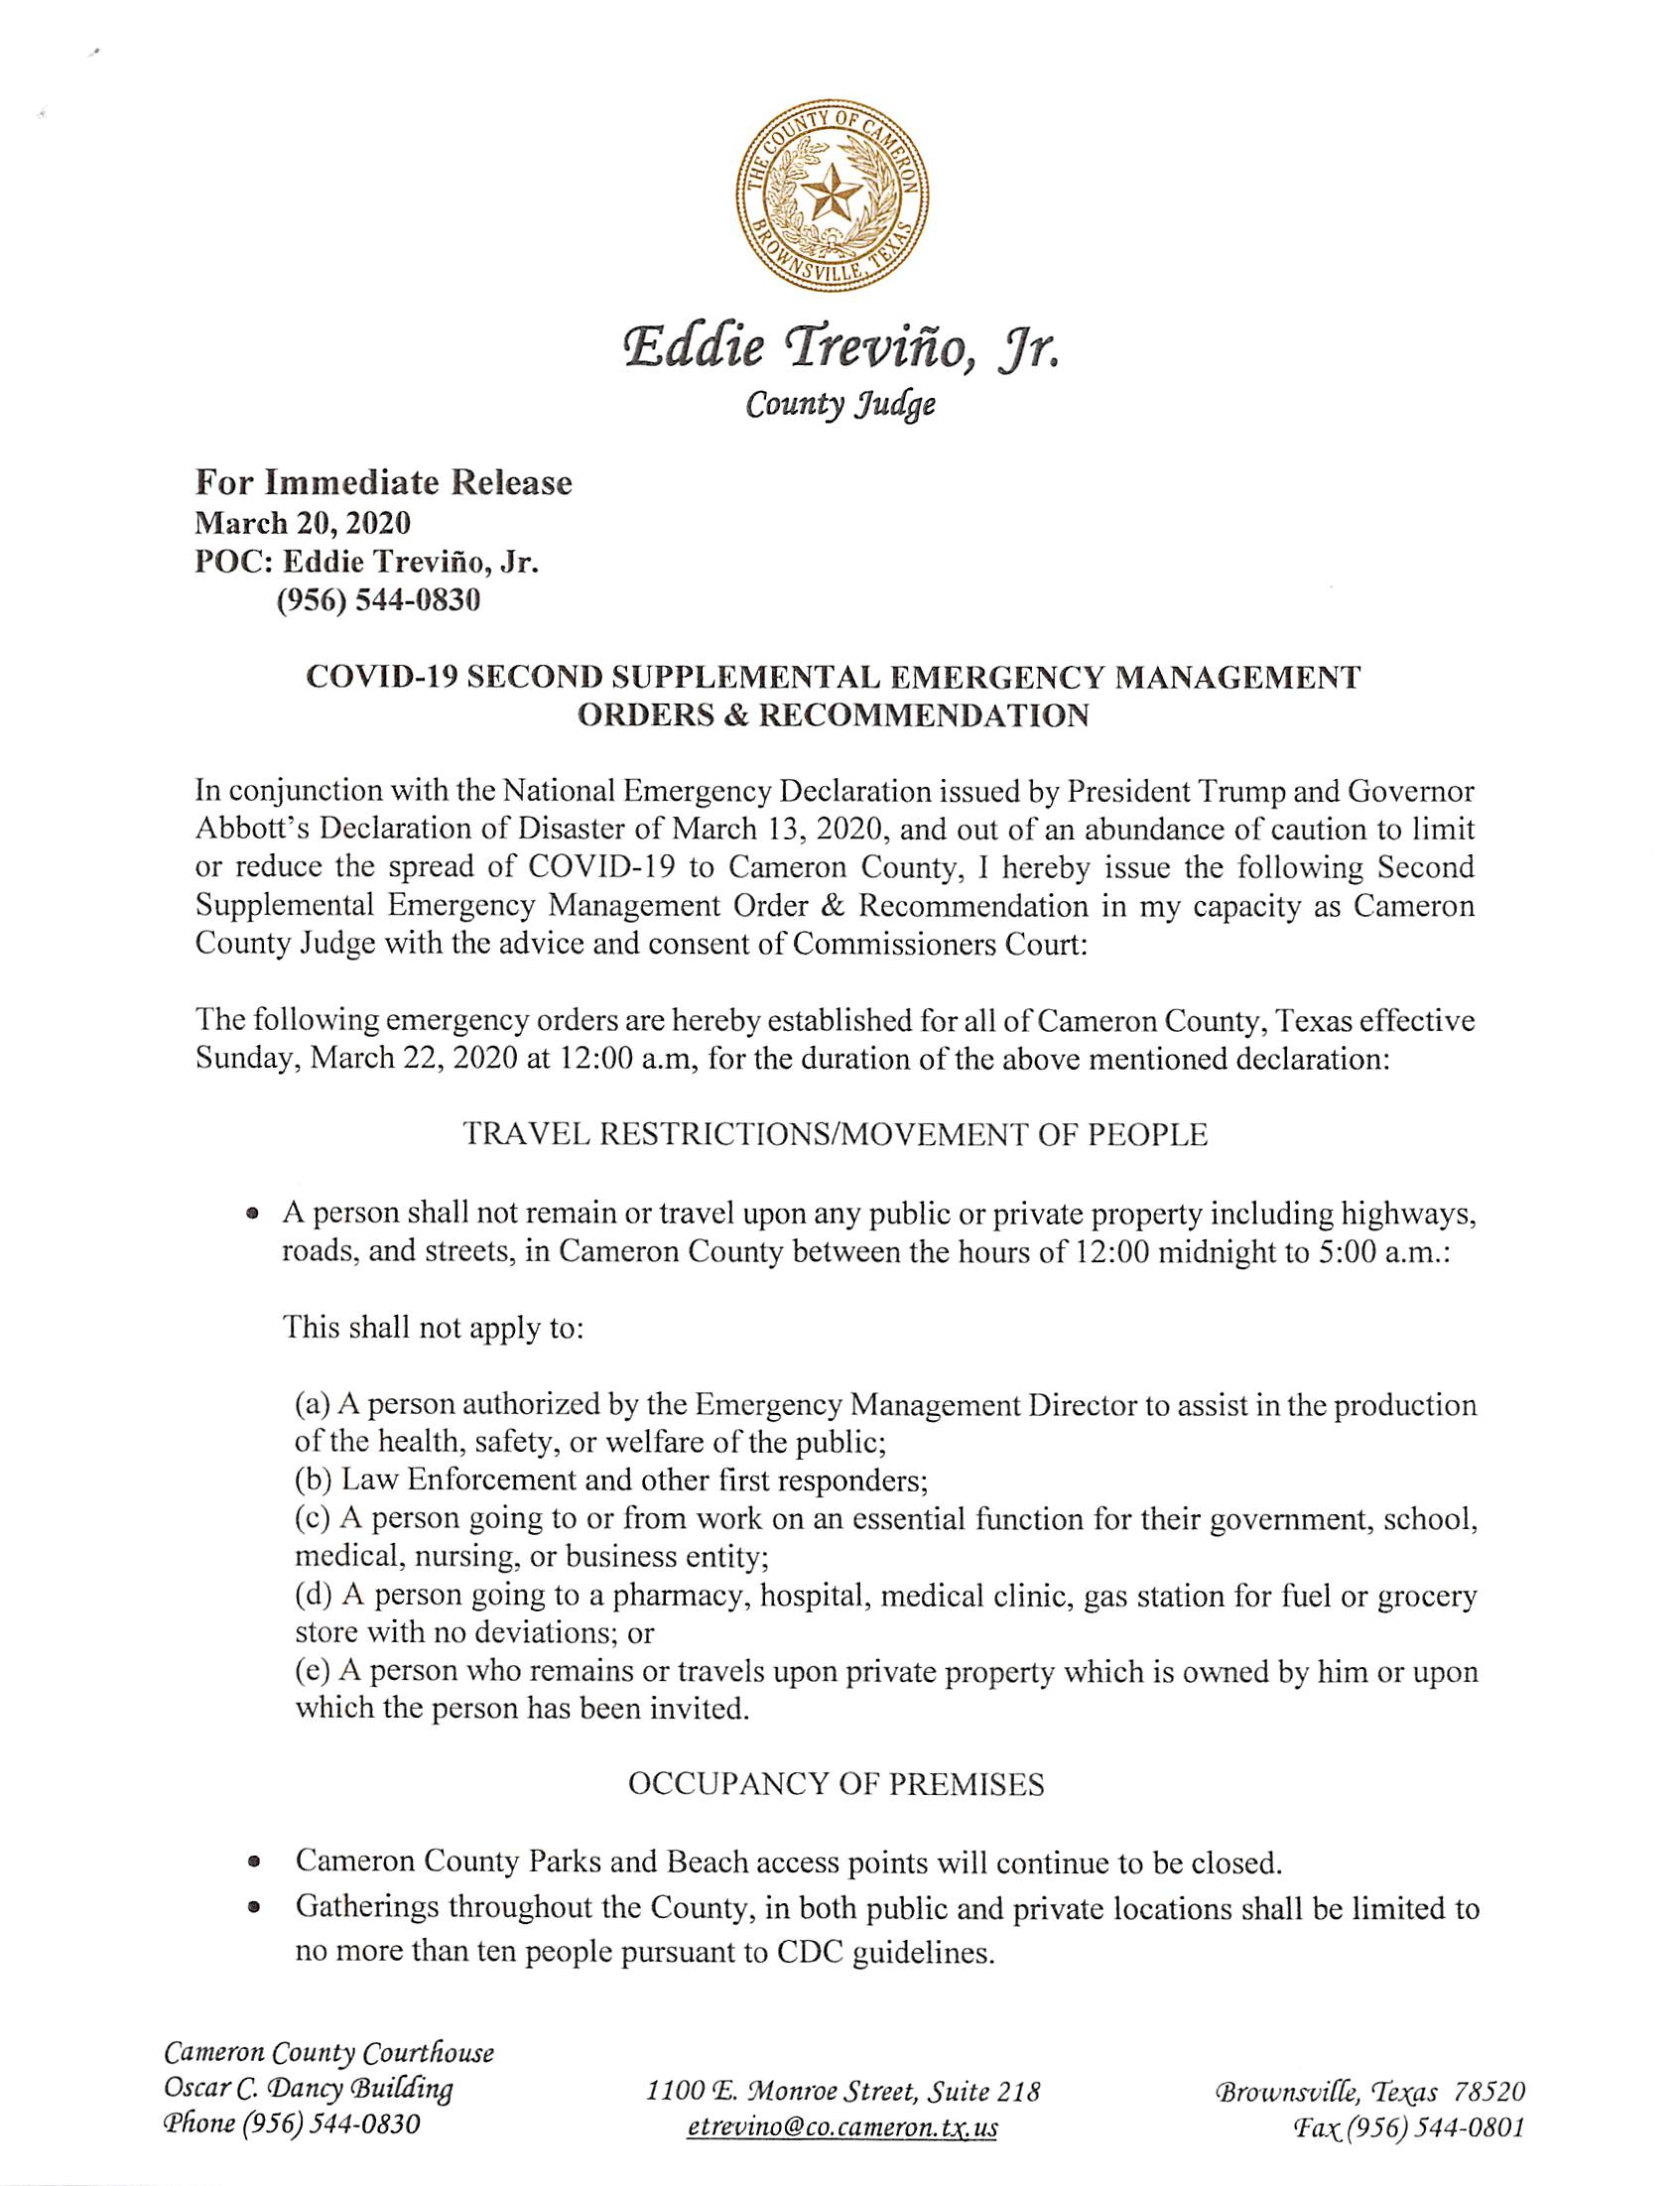 Order 2nd Supplemental Emergency Management Order (00000003)2020.03.20 - No. 7 - Immediate Release -